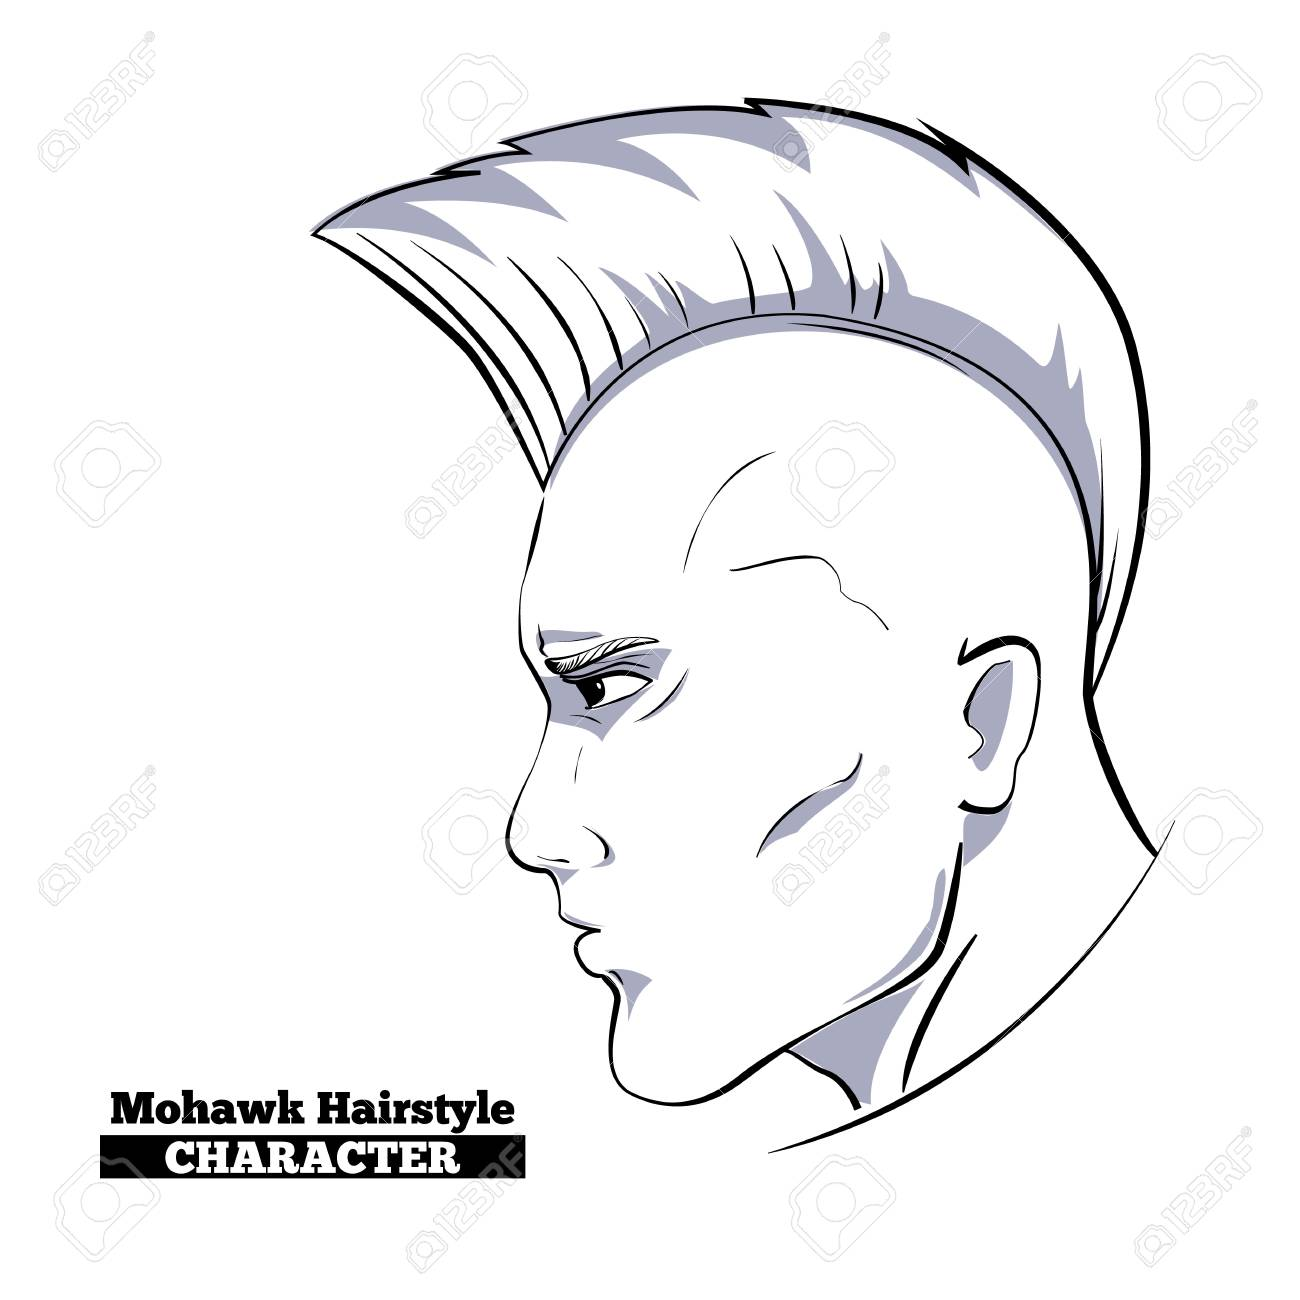 1300x1300 Mohawk Hairstyle Character,hand Drawn Style Sketch.profile View